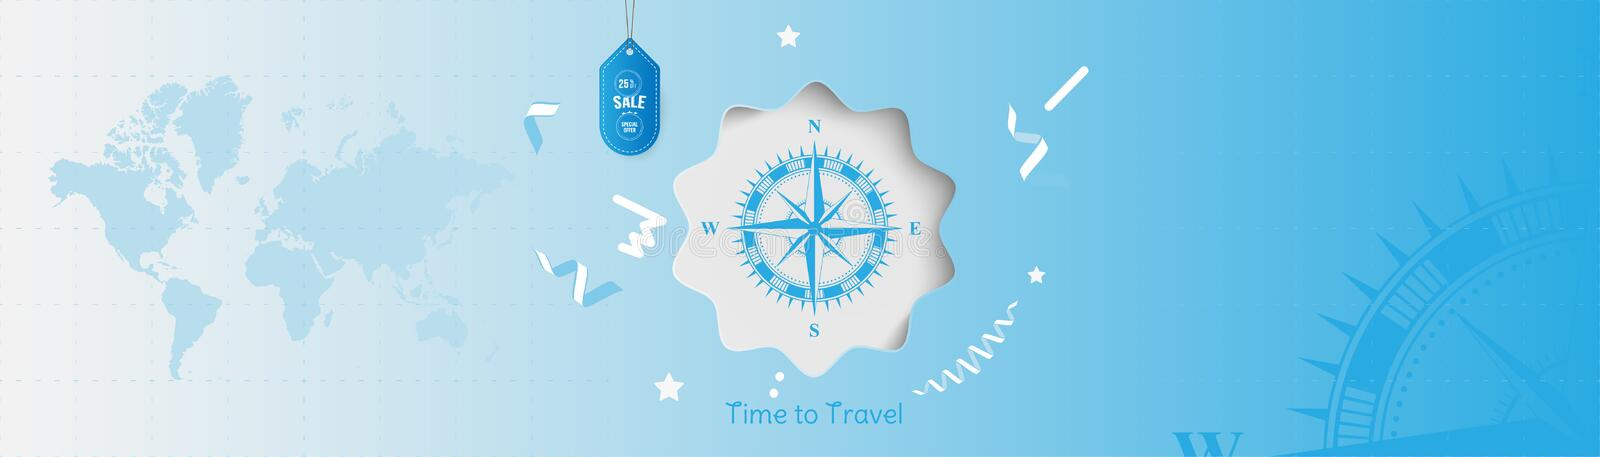 Time to Travel. Banner with Sale and special offer 25 on tourism. Concept with vintage compass and world map on an blue royalty free illustration